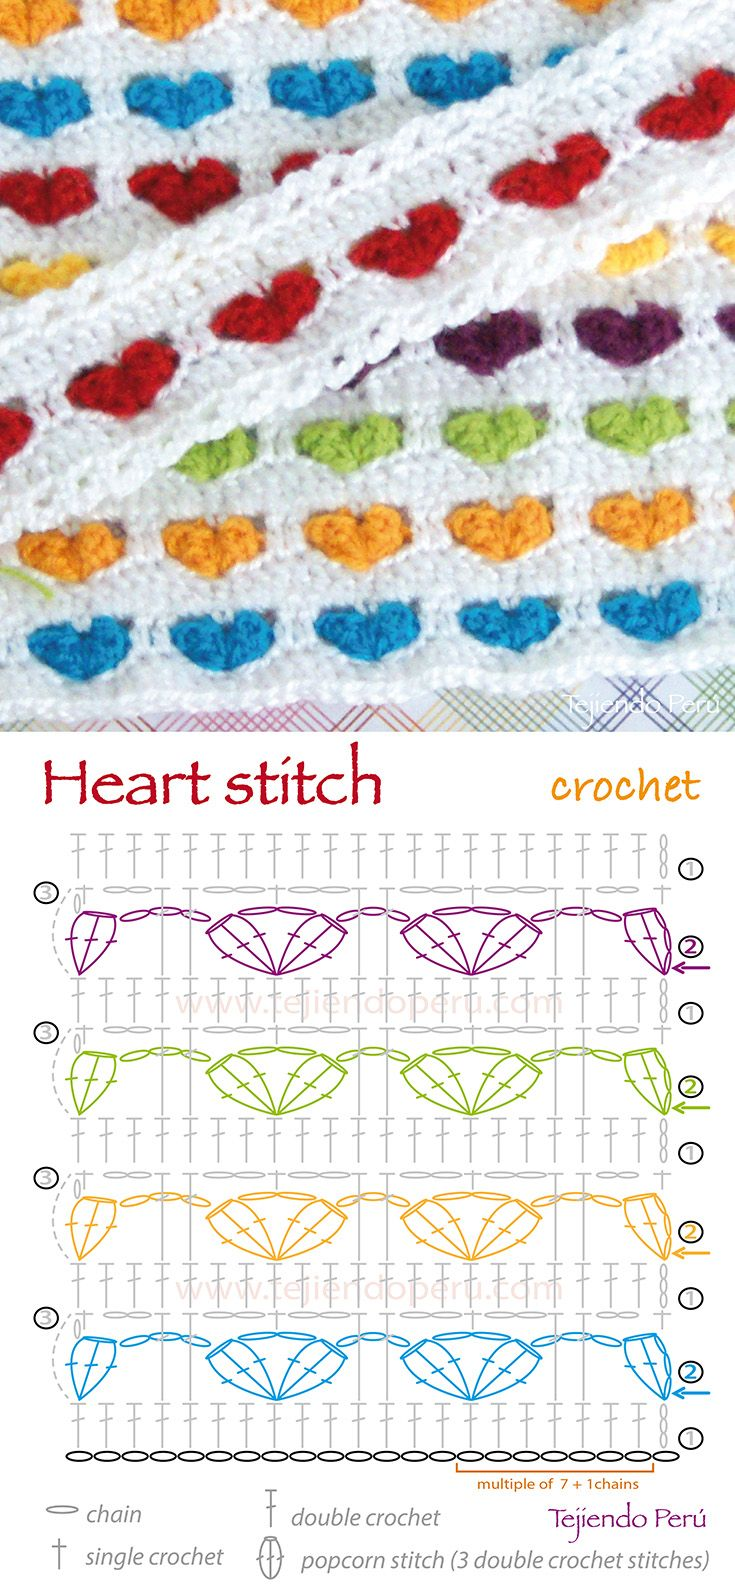 Heart stitch diagram Crochet | wolletjes | Pinterest | Las flores ...